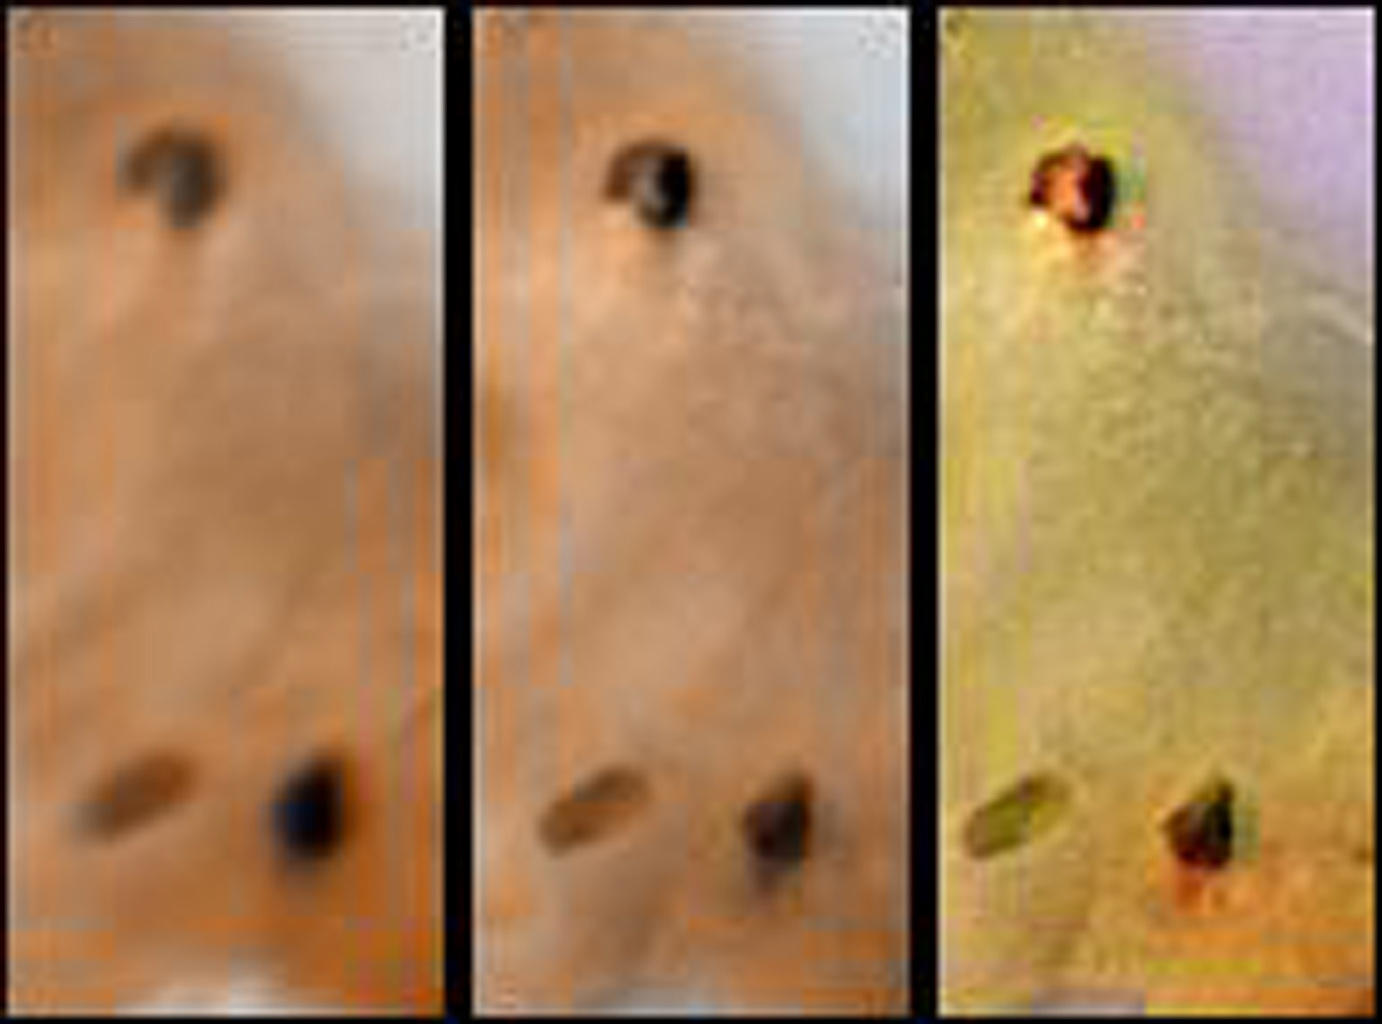 Detail of changes around two hotspots on Jupiter's moon Io as seen by NASA's Voyager 1 in April 1979 (left) and NASA's Galileo spacecraft on September 7th, 1996 (middle and right).